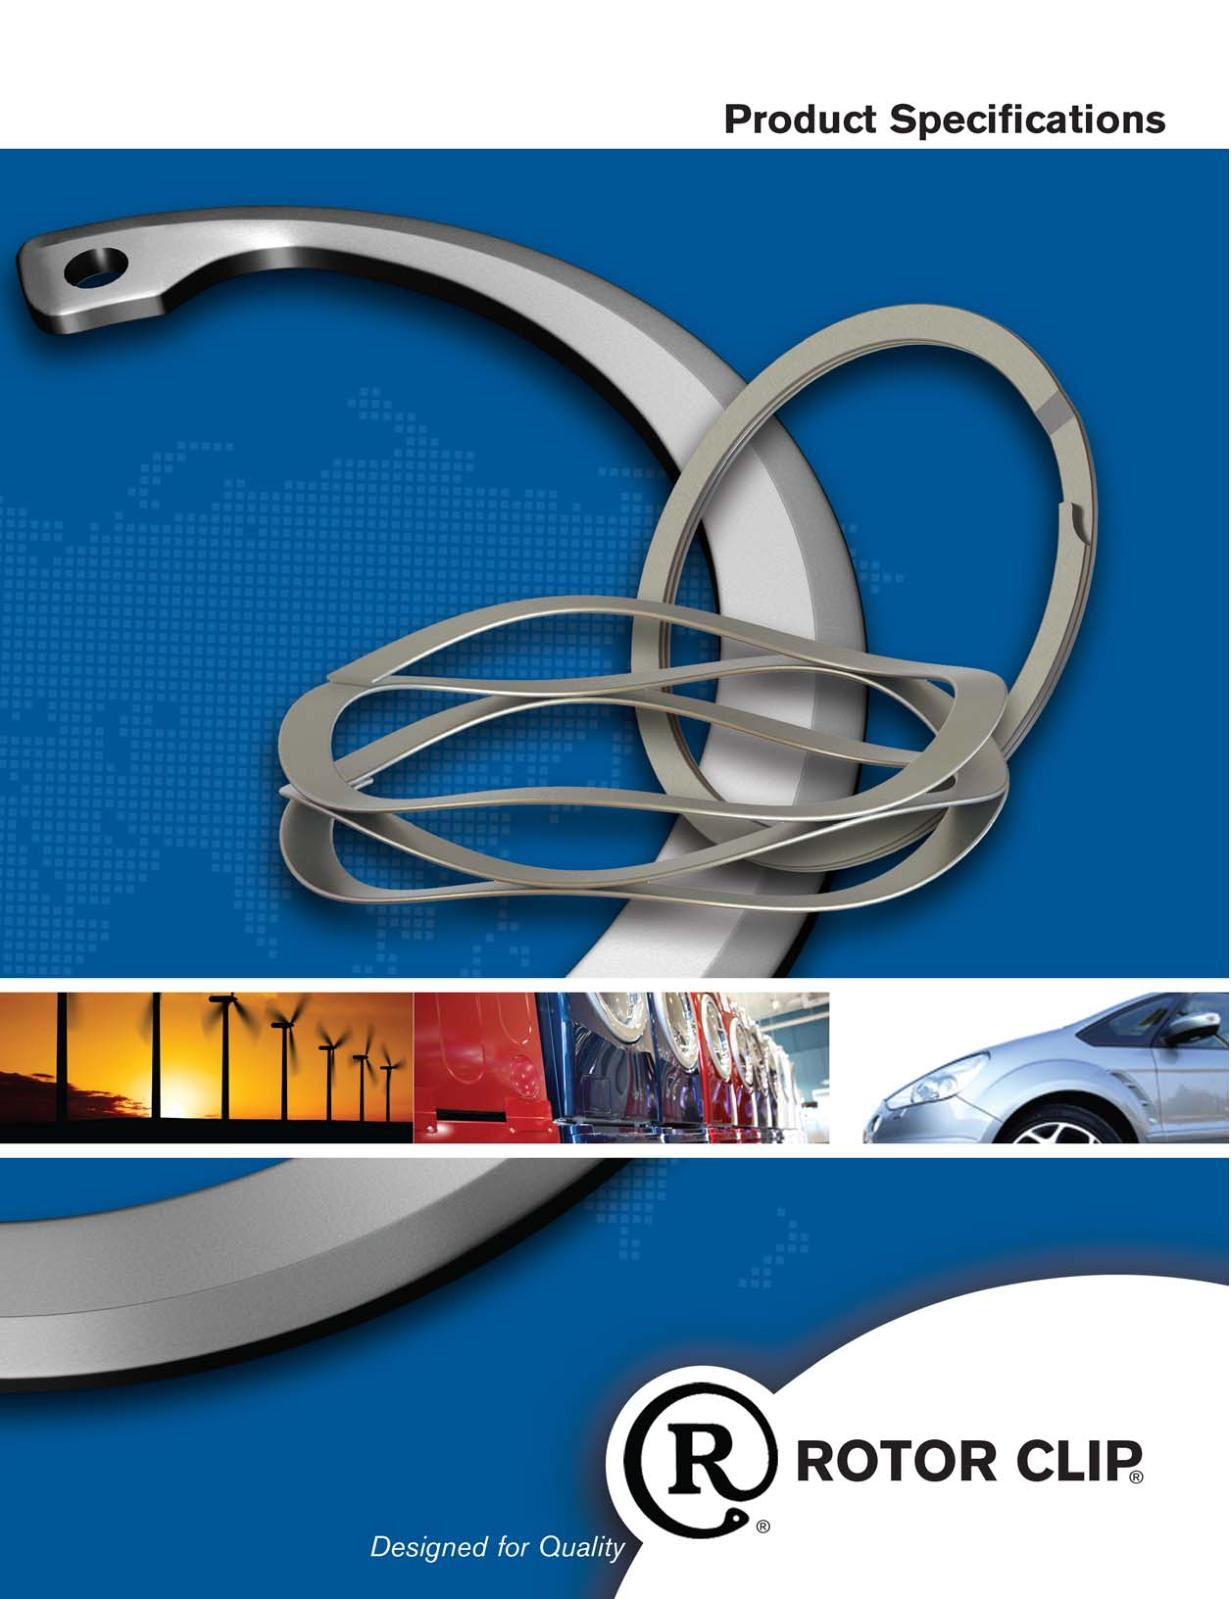 Pack of 15 Standard Lugs Carbon Steel Phosphate Coating Rotor Clip C-137 ST PA Retaining Ring External Radially Installed